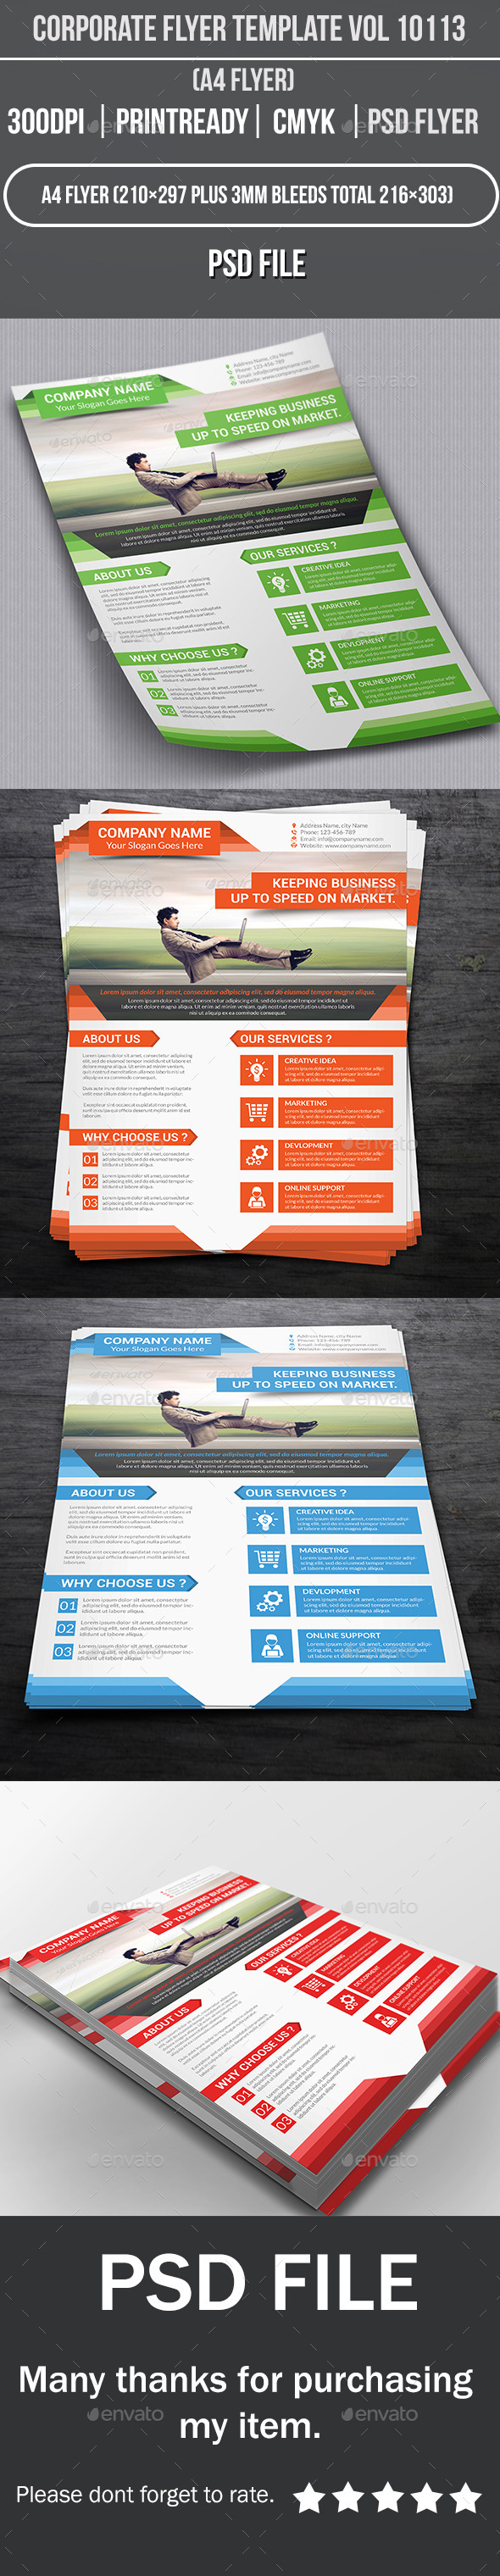 GraphicRiver Corporate Flyer Template Vol 10113 10350804